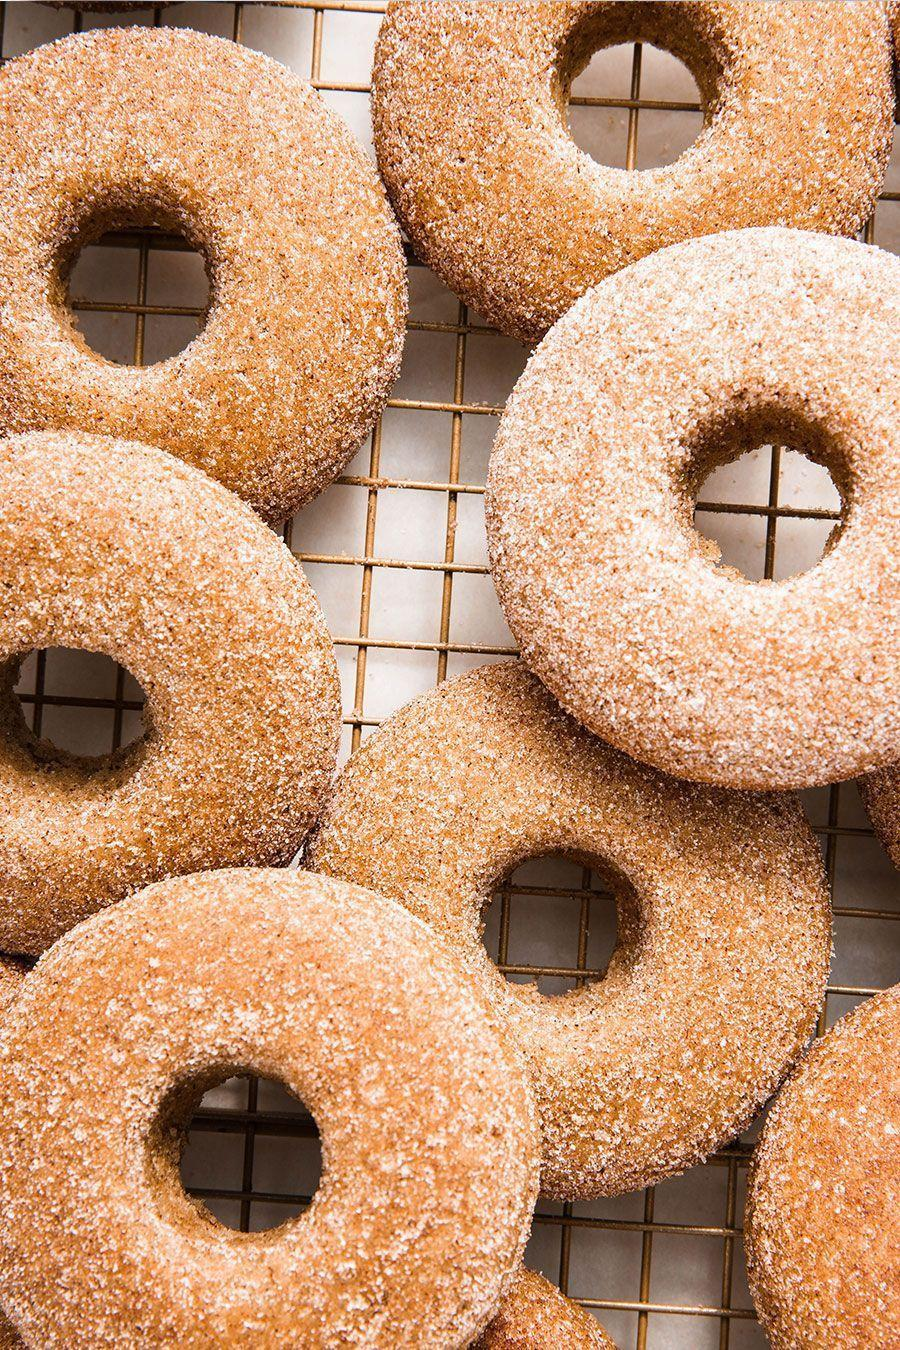 "<p><a href=""https://www.delish.com/uk/cooking/recipes/a30165545/how-to-make-donuts-at-home/"" rel=""nofollow noopener"" target=""_blank"" data-ylk=""slk:Donuts"" class=""link rapid-noclick-resp"">Donuts</a>...that are delicious and vegan?! Believe it.</p><p>Get the <a href=""https://www.delish.com/uk/cooking/recipes/a34050952/vegan-donuts/"" rel=""nofollow noopener"" target=""_blank"" data-ylk=""slk:Cinnamon Sugar Vegan Donuts"" class=""link rapid-noclick-resp"">Cinnamon Sugar Vegan Donuts</a> recipe.</p>"